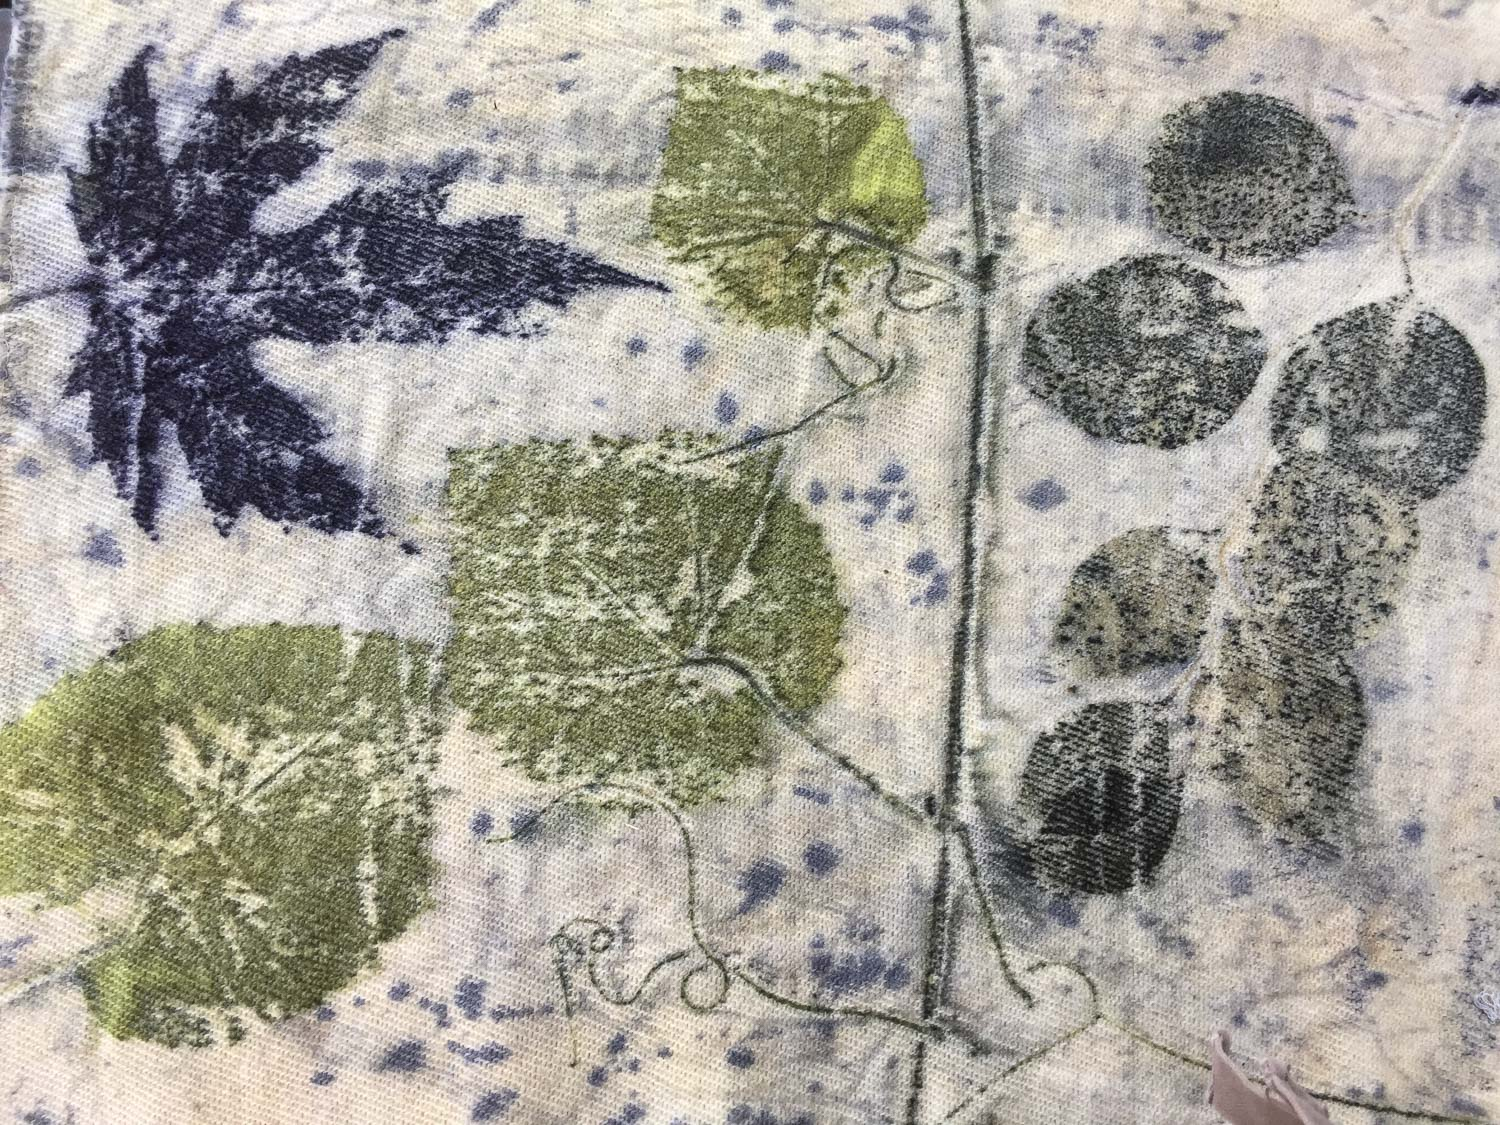 Wool fabric after eco printing.